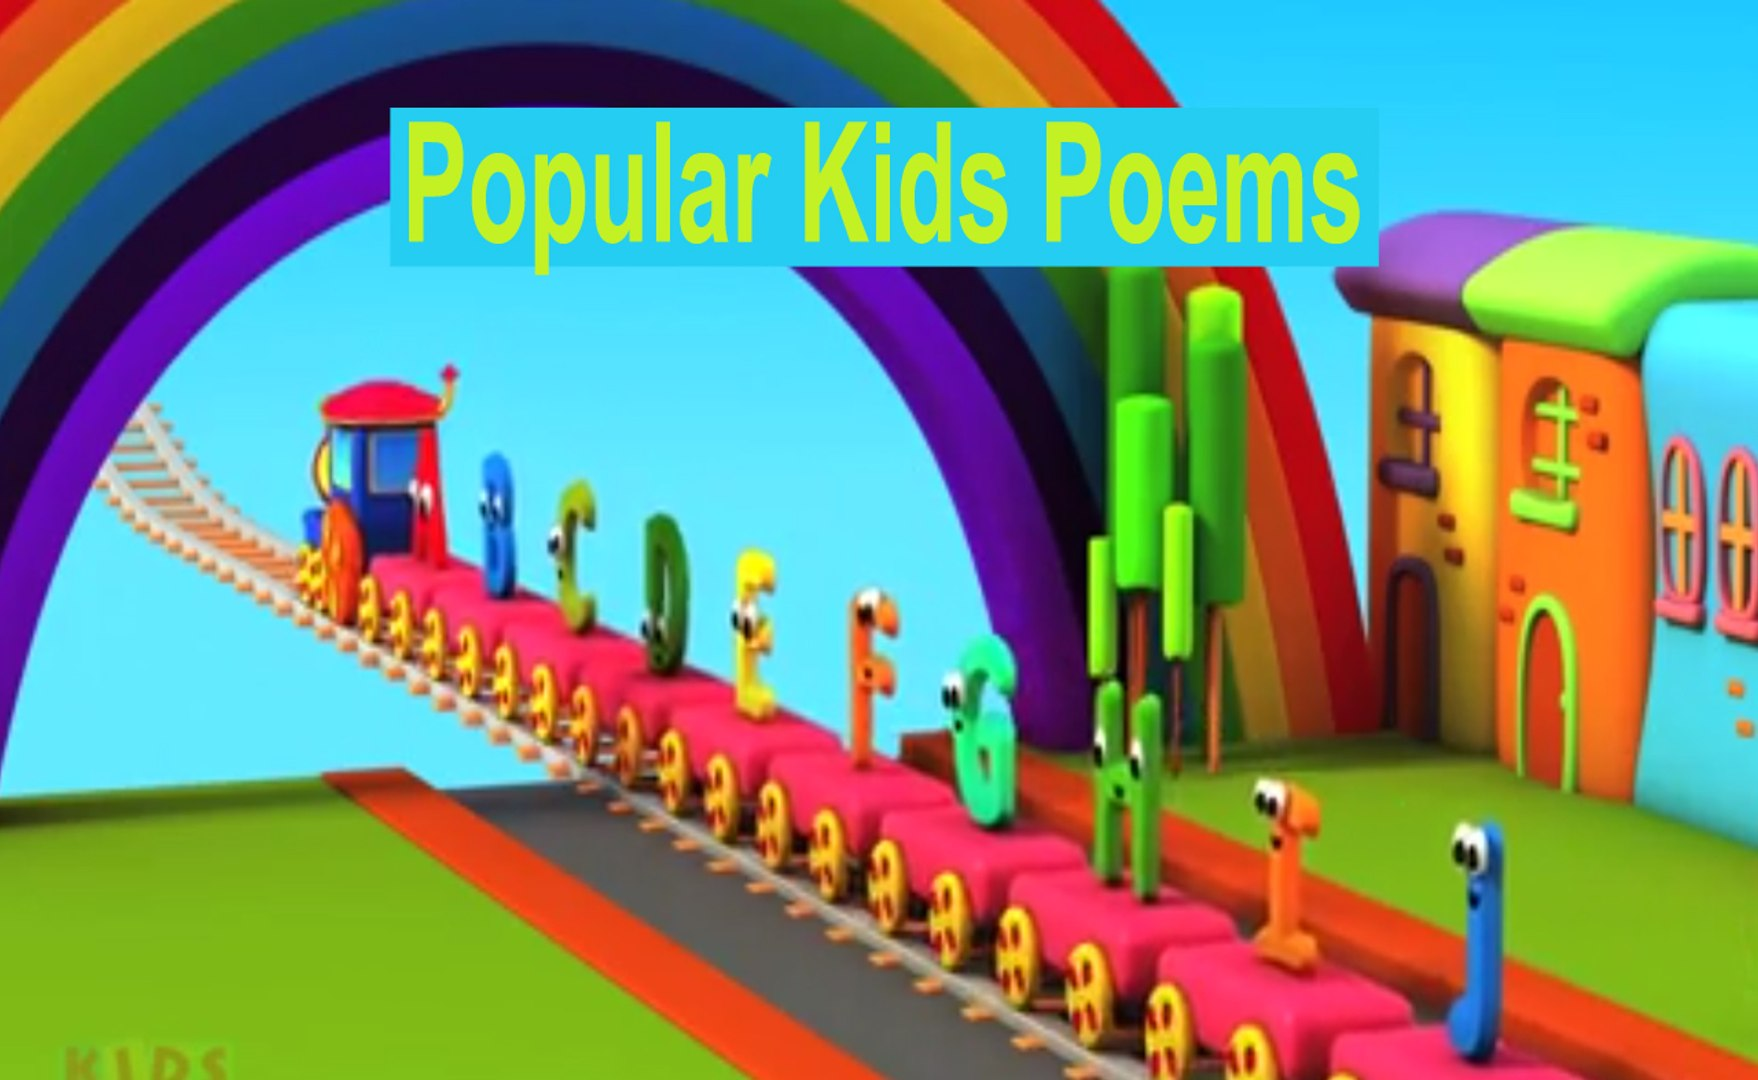 kids poems|The Train,Alphabet Adventure|ABC Song| Nursery Rhymes| kids songs| Children Funny cartoon